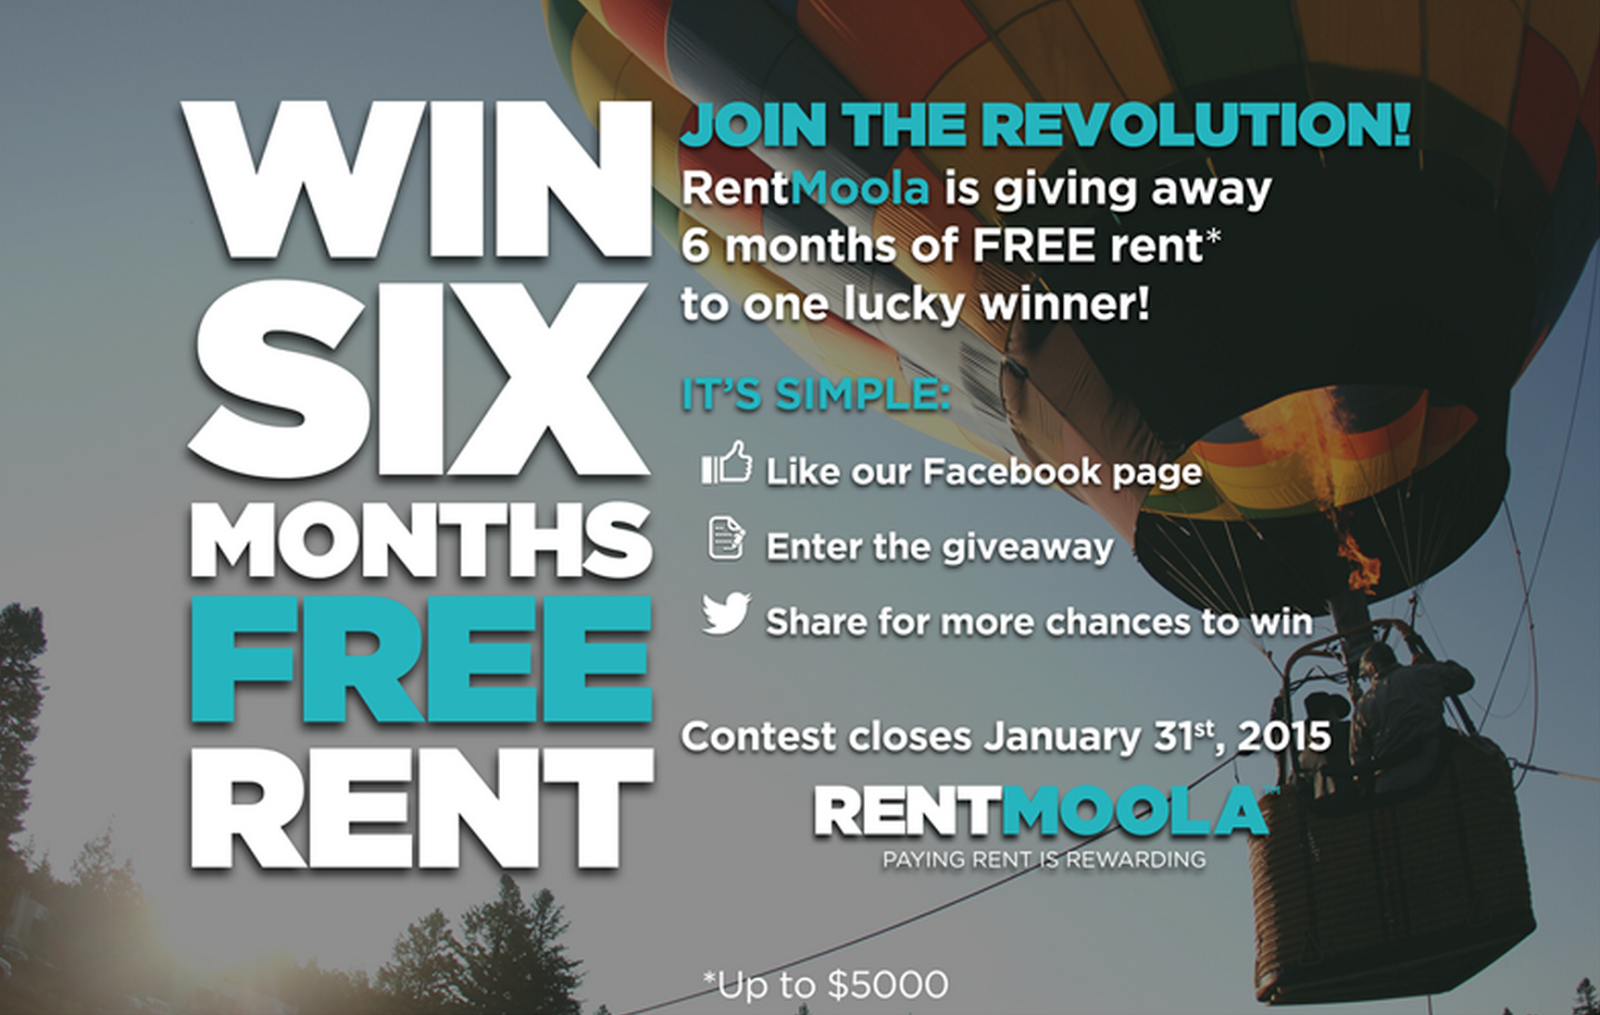 image 2015 January USA Giveaway -Enter to Win 6 Months Free Rent - Rent Moolah